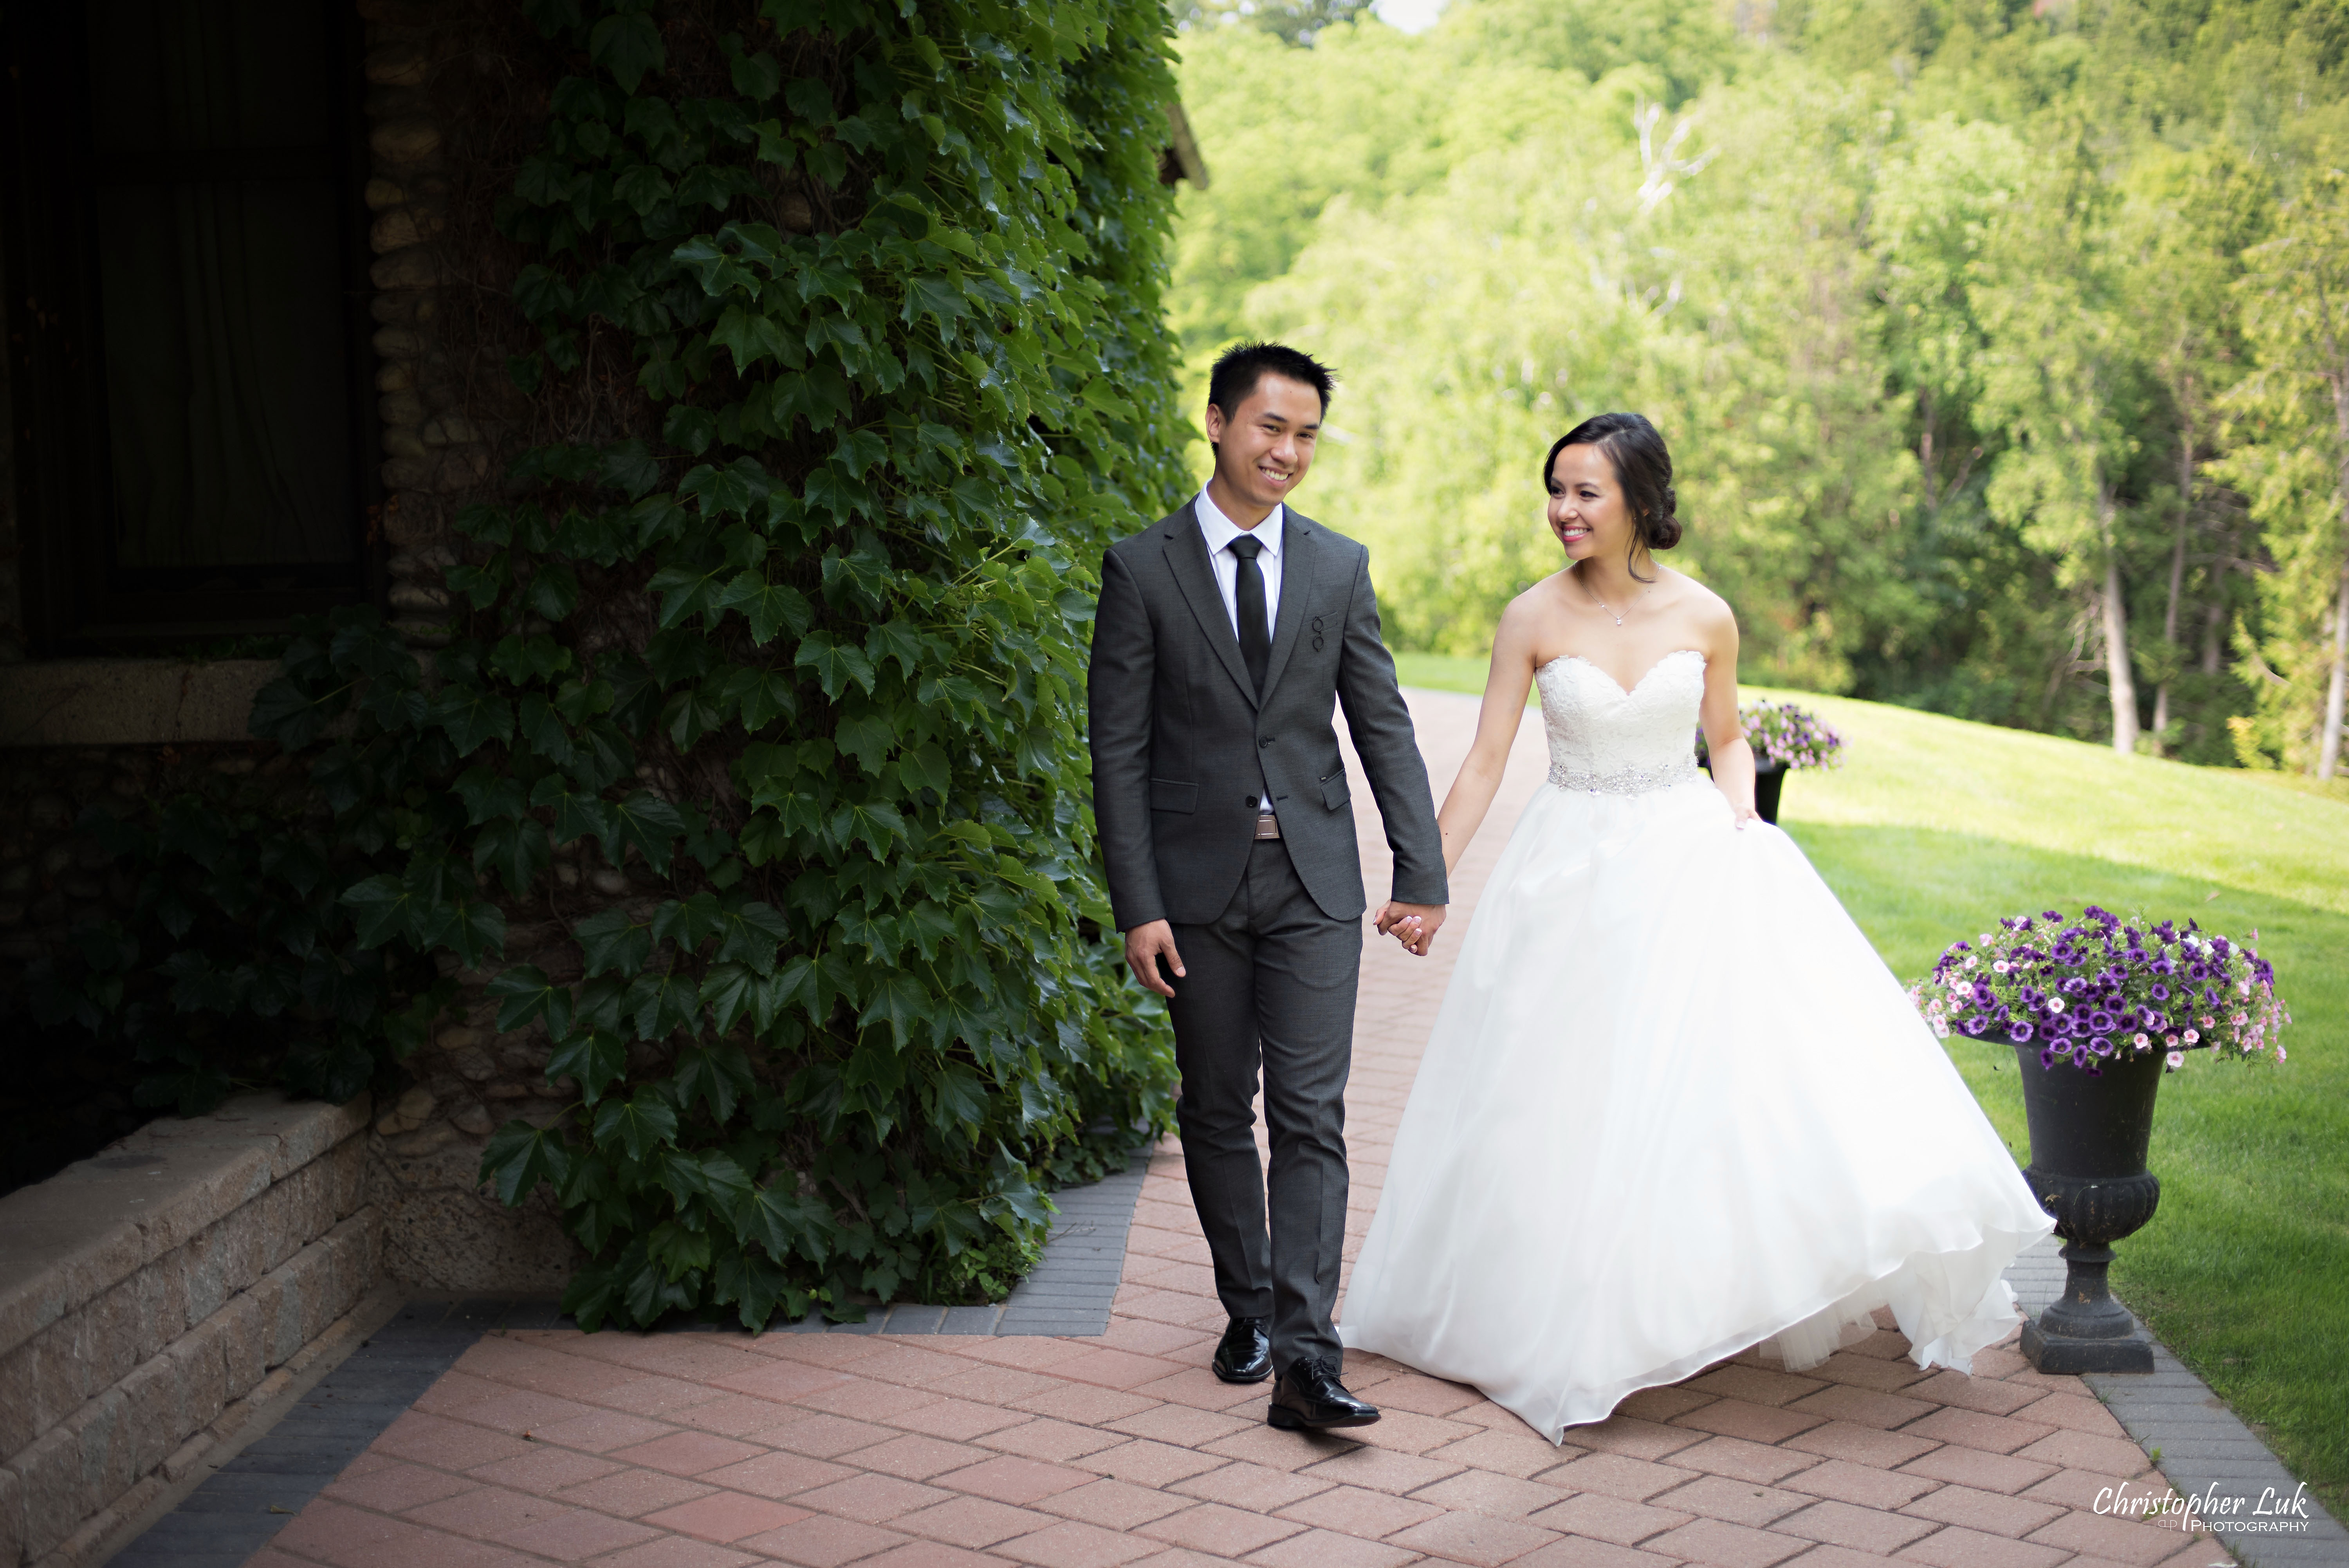 Karen and Scott's Outdoor Summer Wedding – Miller Lash House Historic Estate Event Venue at University of Toronto UTSC